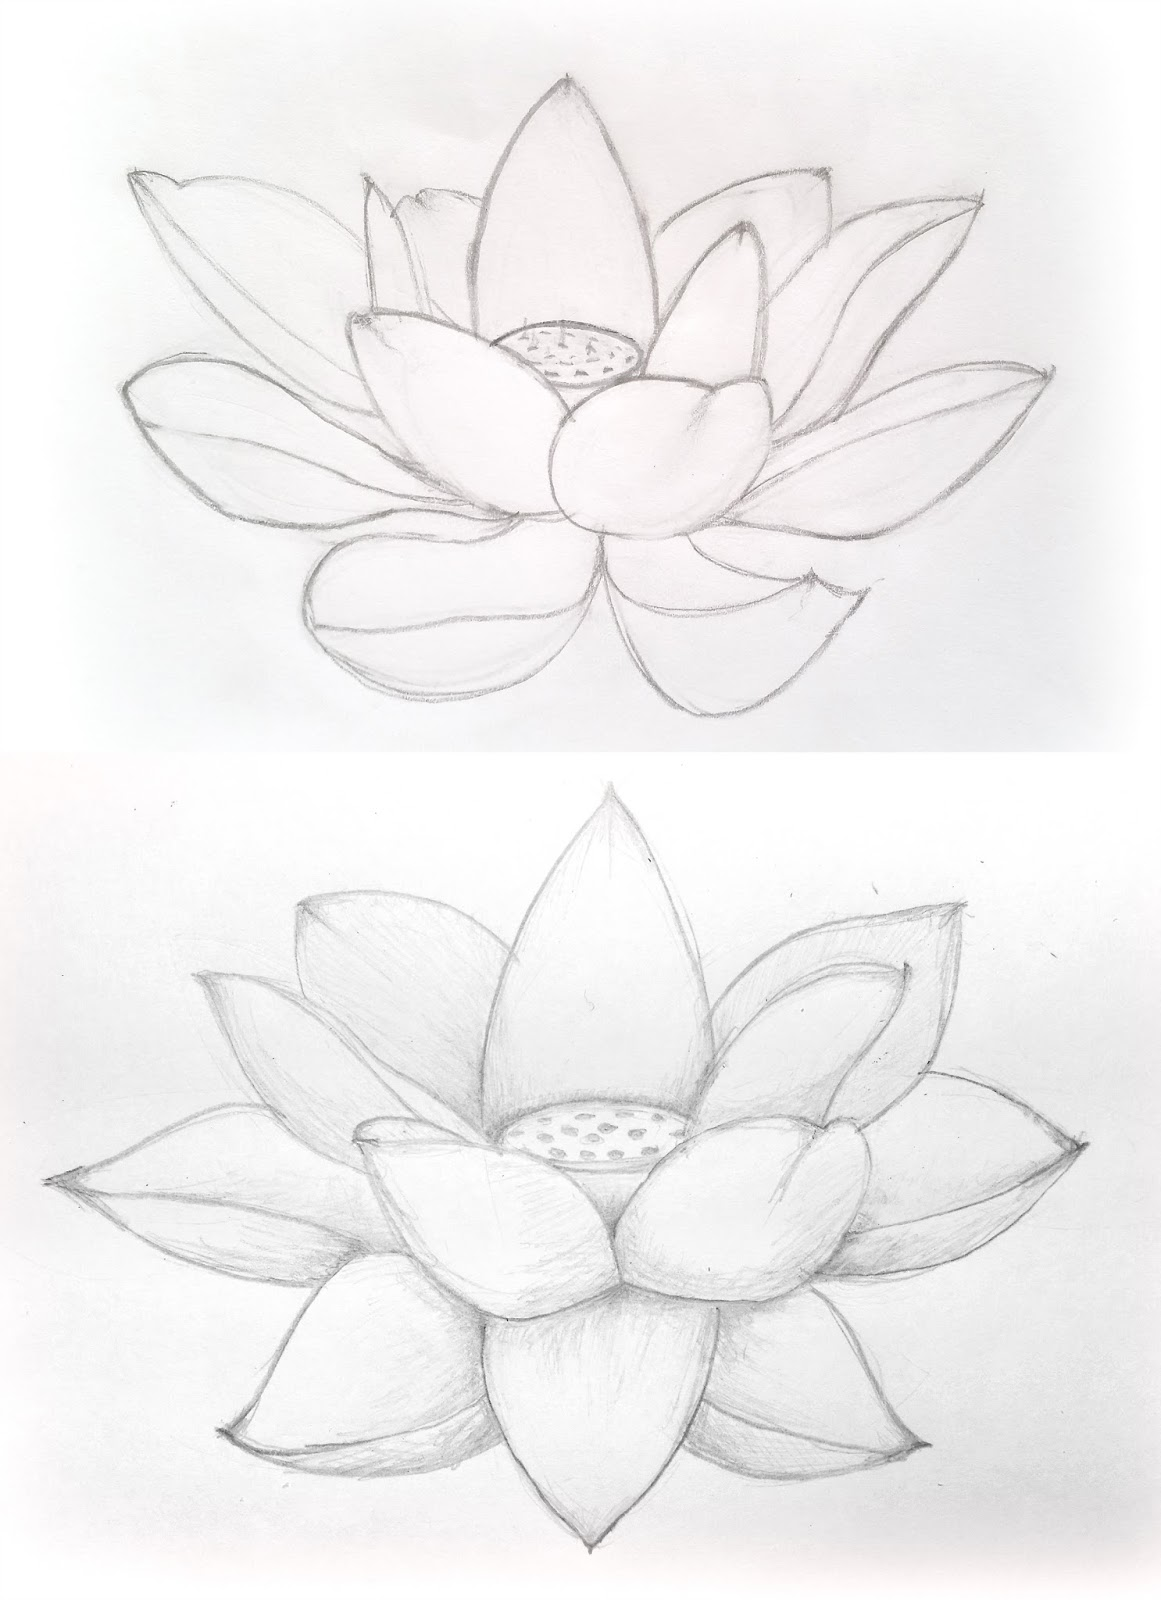 Mollys Art Blog Januarty Drawing Practice Continued Lotus Flowers